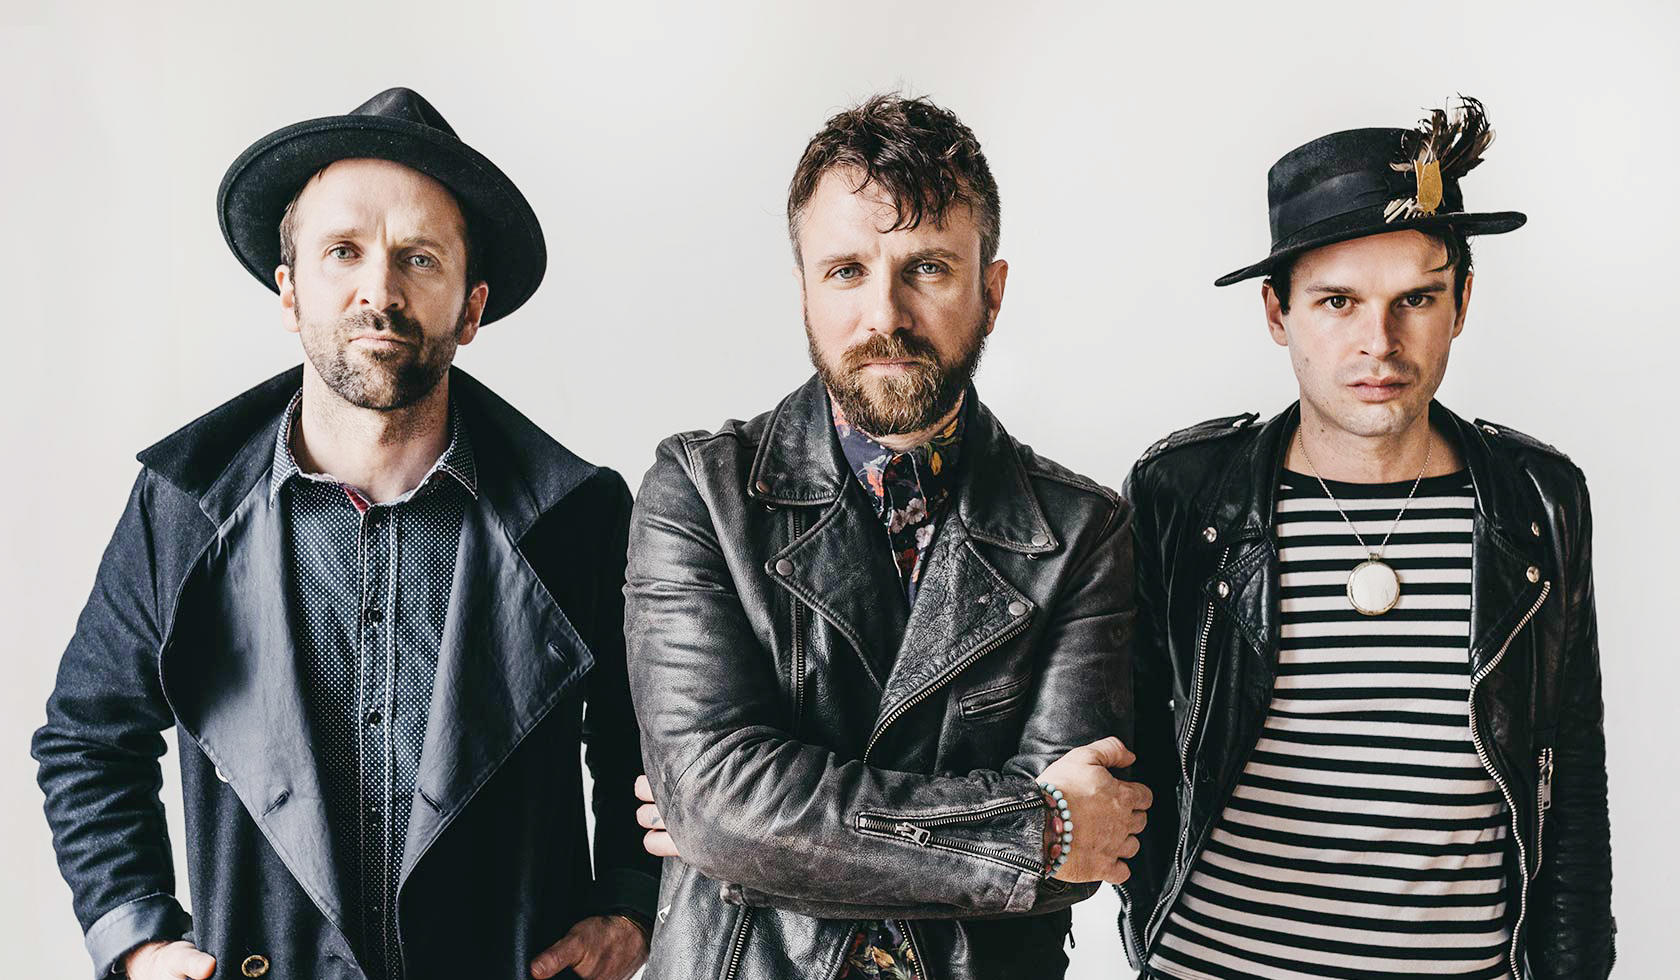 The Trews are a Canadian rock band with many radio hits.